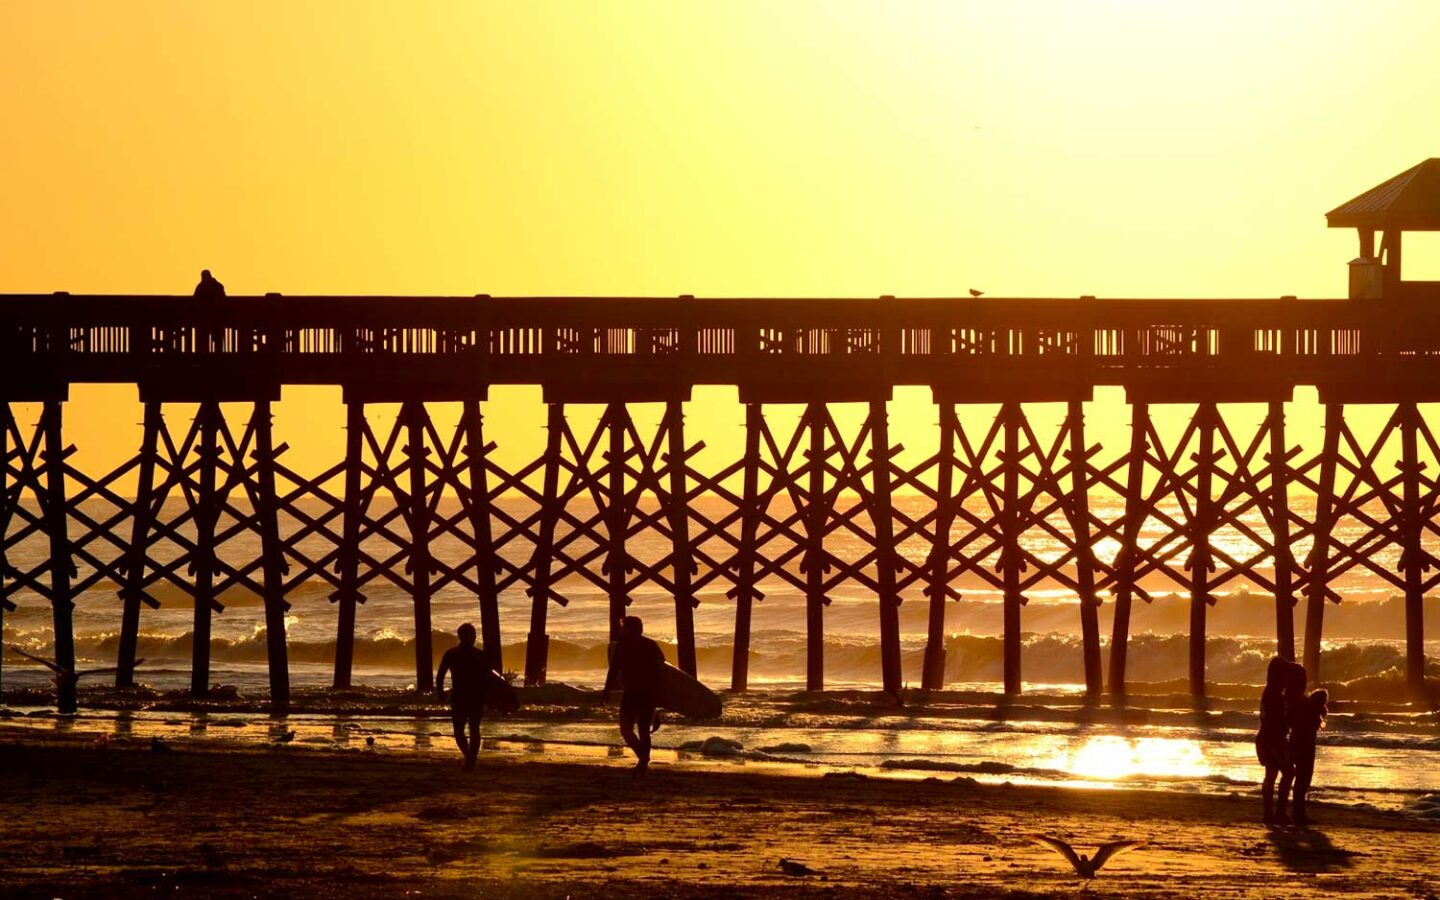 View of surfers at pier during sunrise